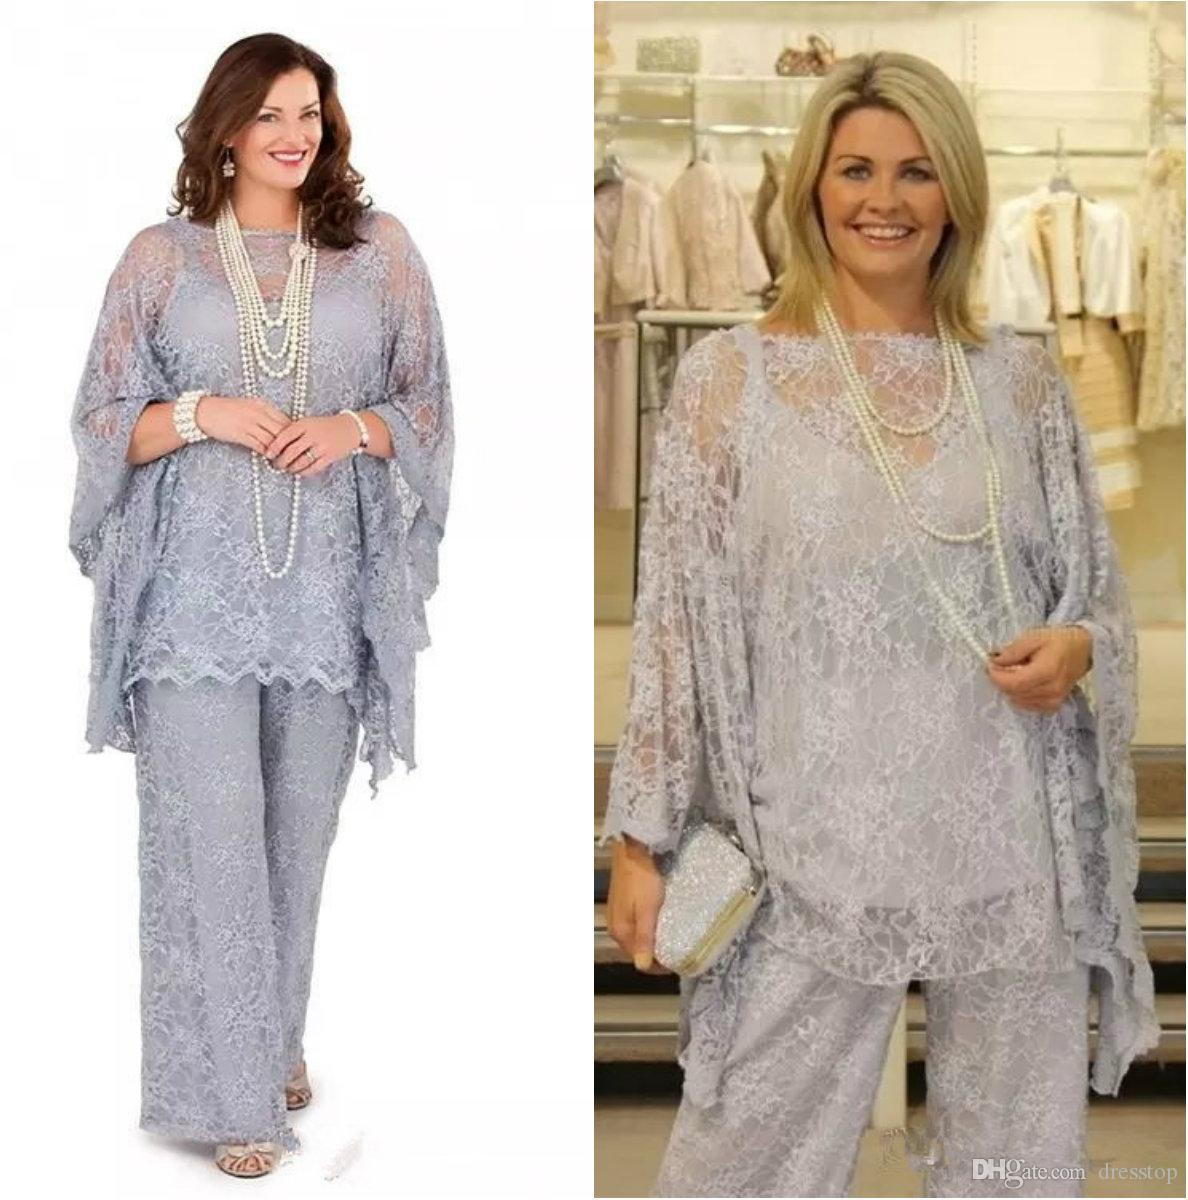 9aa0167c85 Lace Mother Of The Bride Pant Suits 2017 Long Sleeves Three Pieces Silver  Gray Wedding Guest Dress Plus Size Formal Dress Evening Joan Joan Rivers  Joan ...